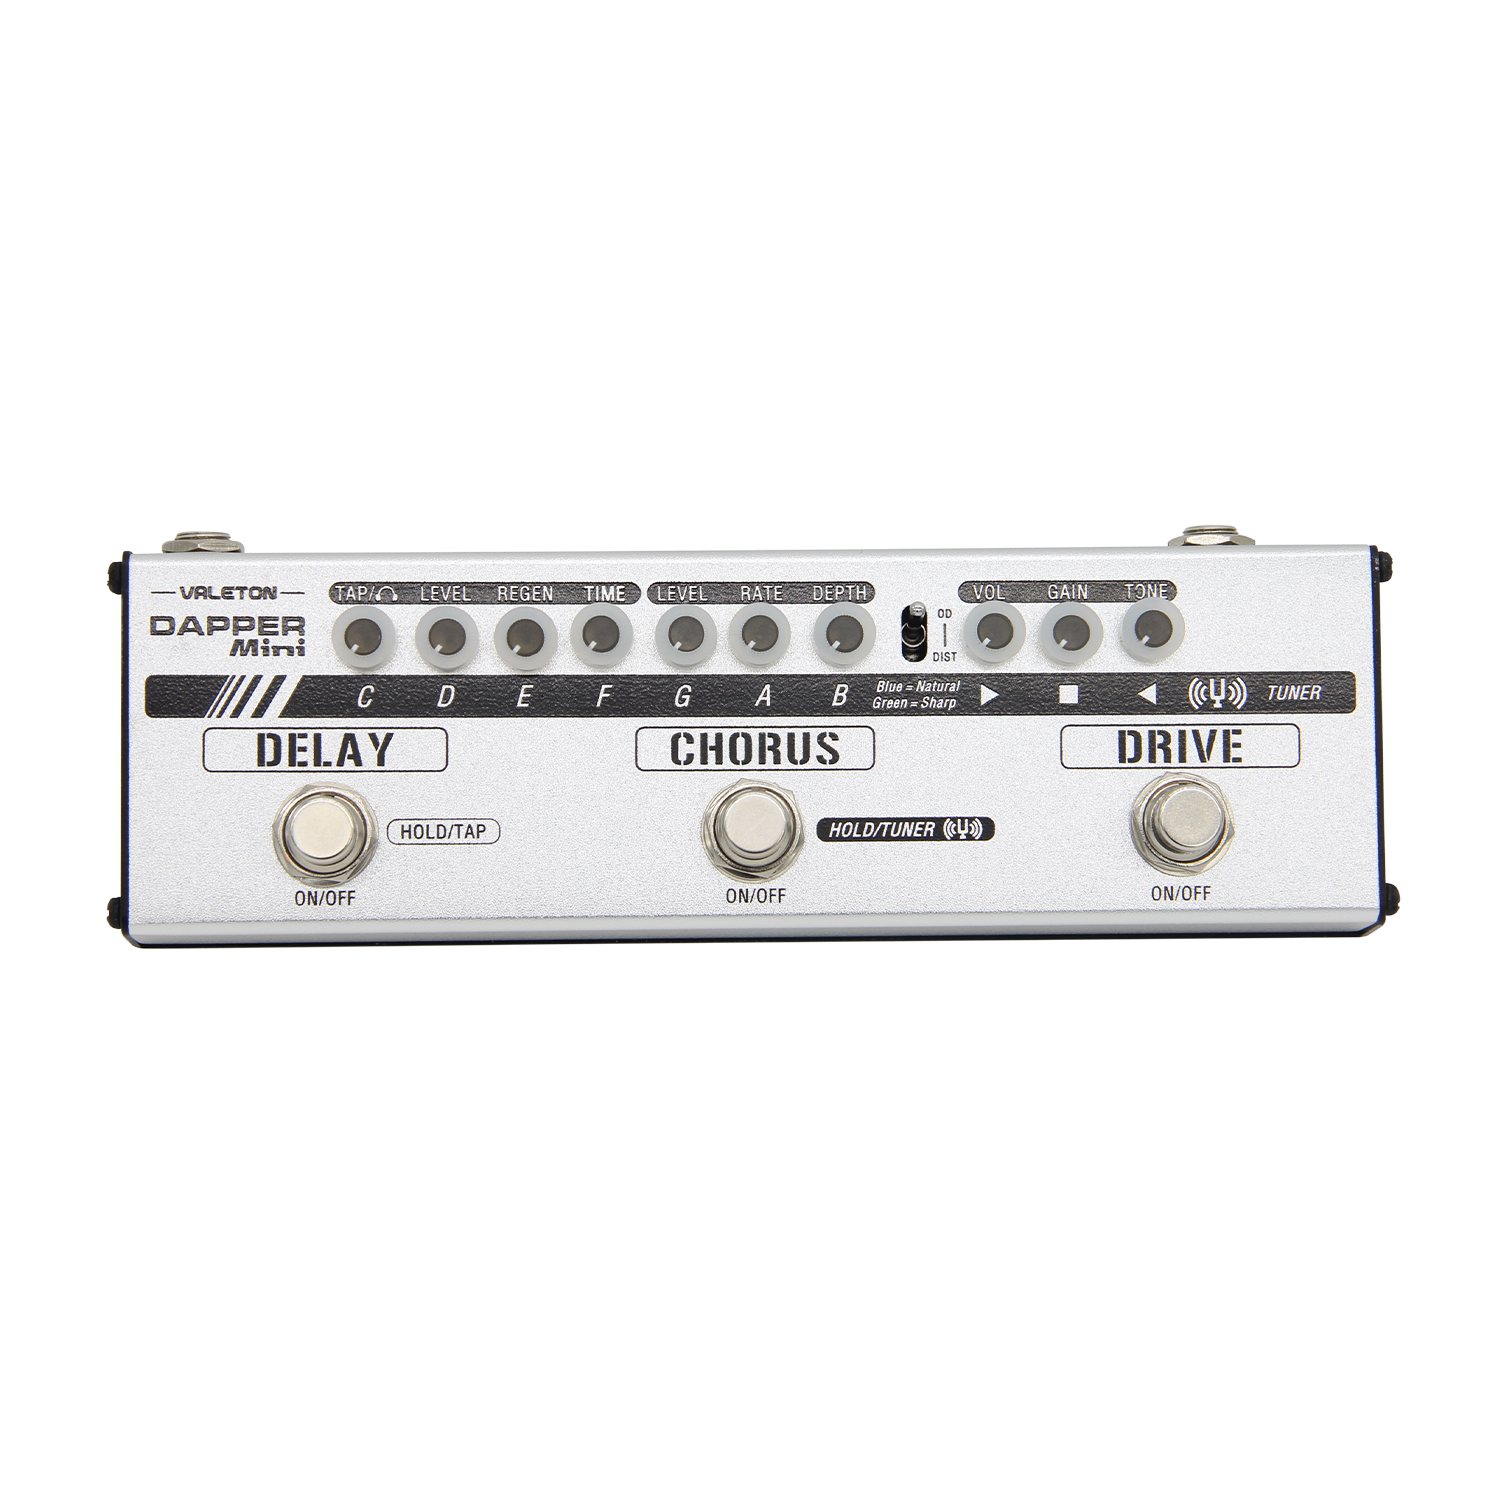 Valeton Dapper Mini Guitar Effect Pedal All In One Effects Strip Tuner Drive Chorus Delay Phones valeton dapper mini guitar effect pedal tuner drive chorus delay phones all in one effects strip